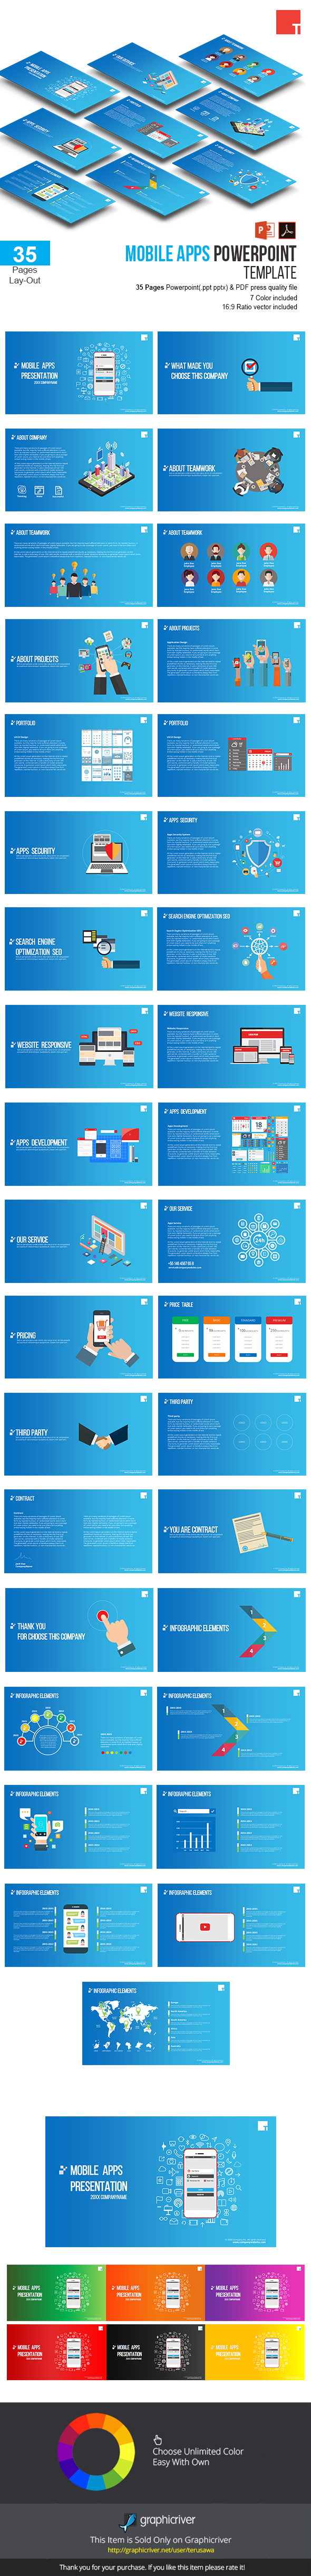 GraphicRiver Mobile Apps Powerpoint Template 20387969